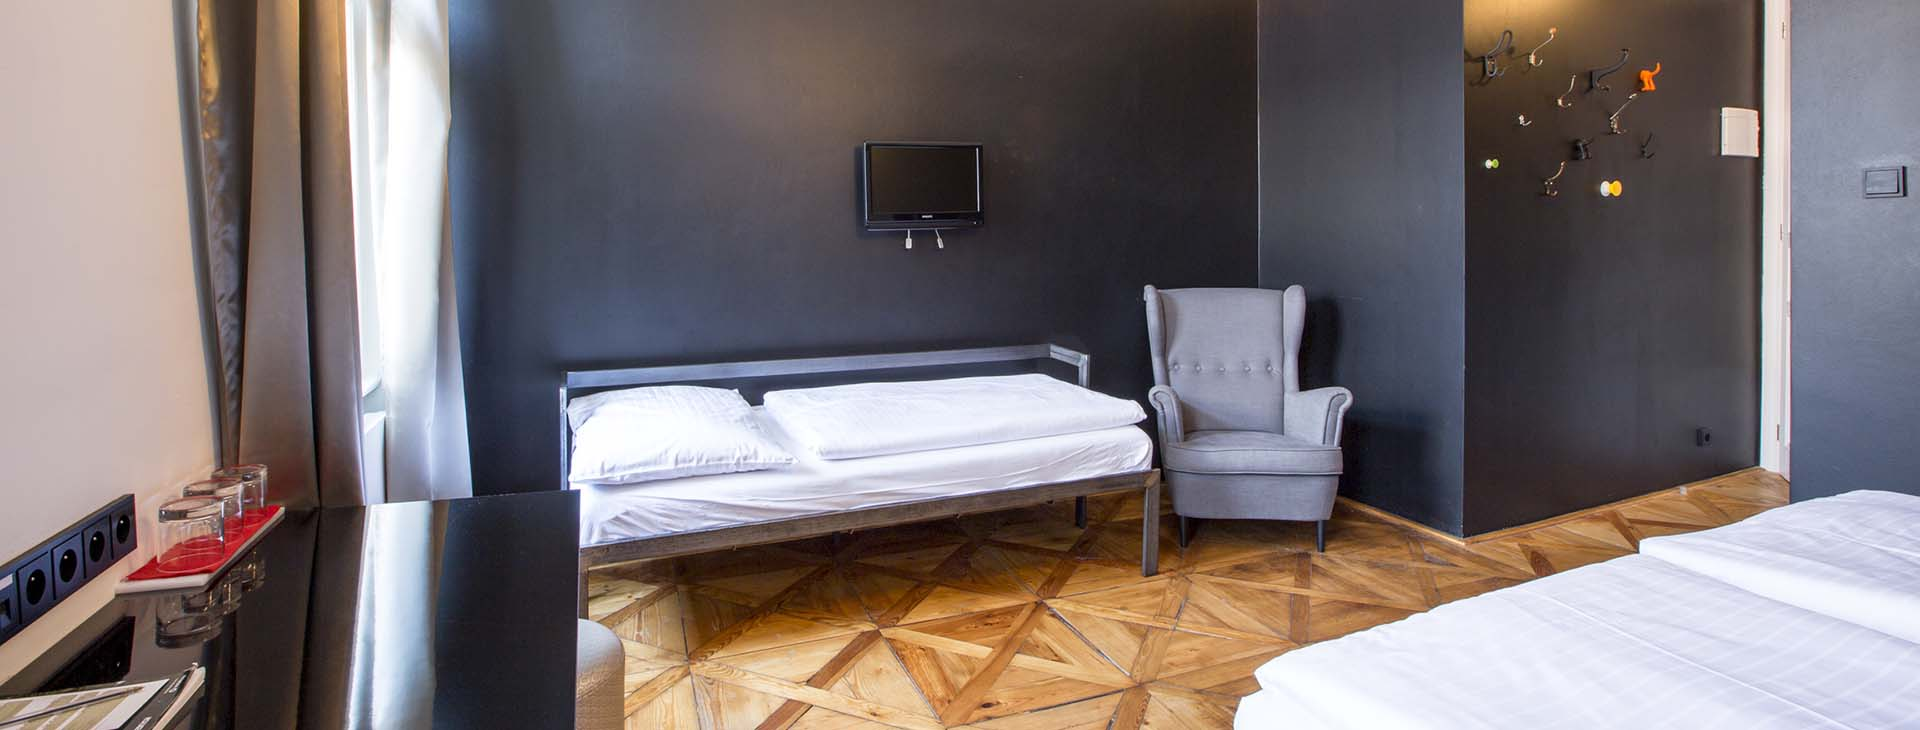 sophies-hostel-private-room-5-1920×730